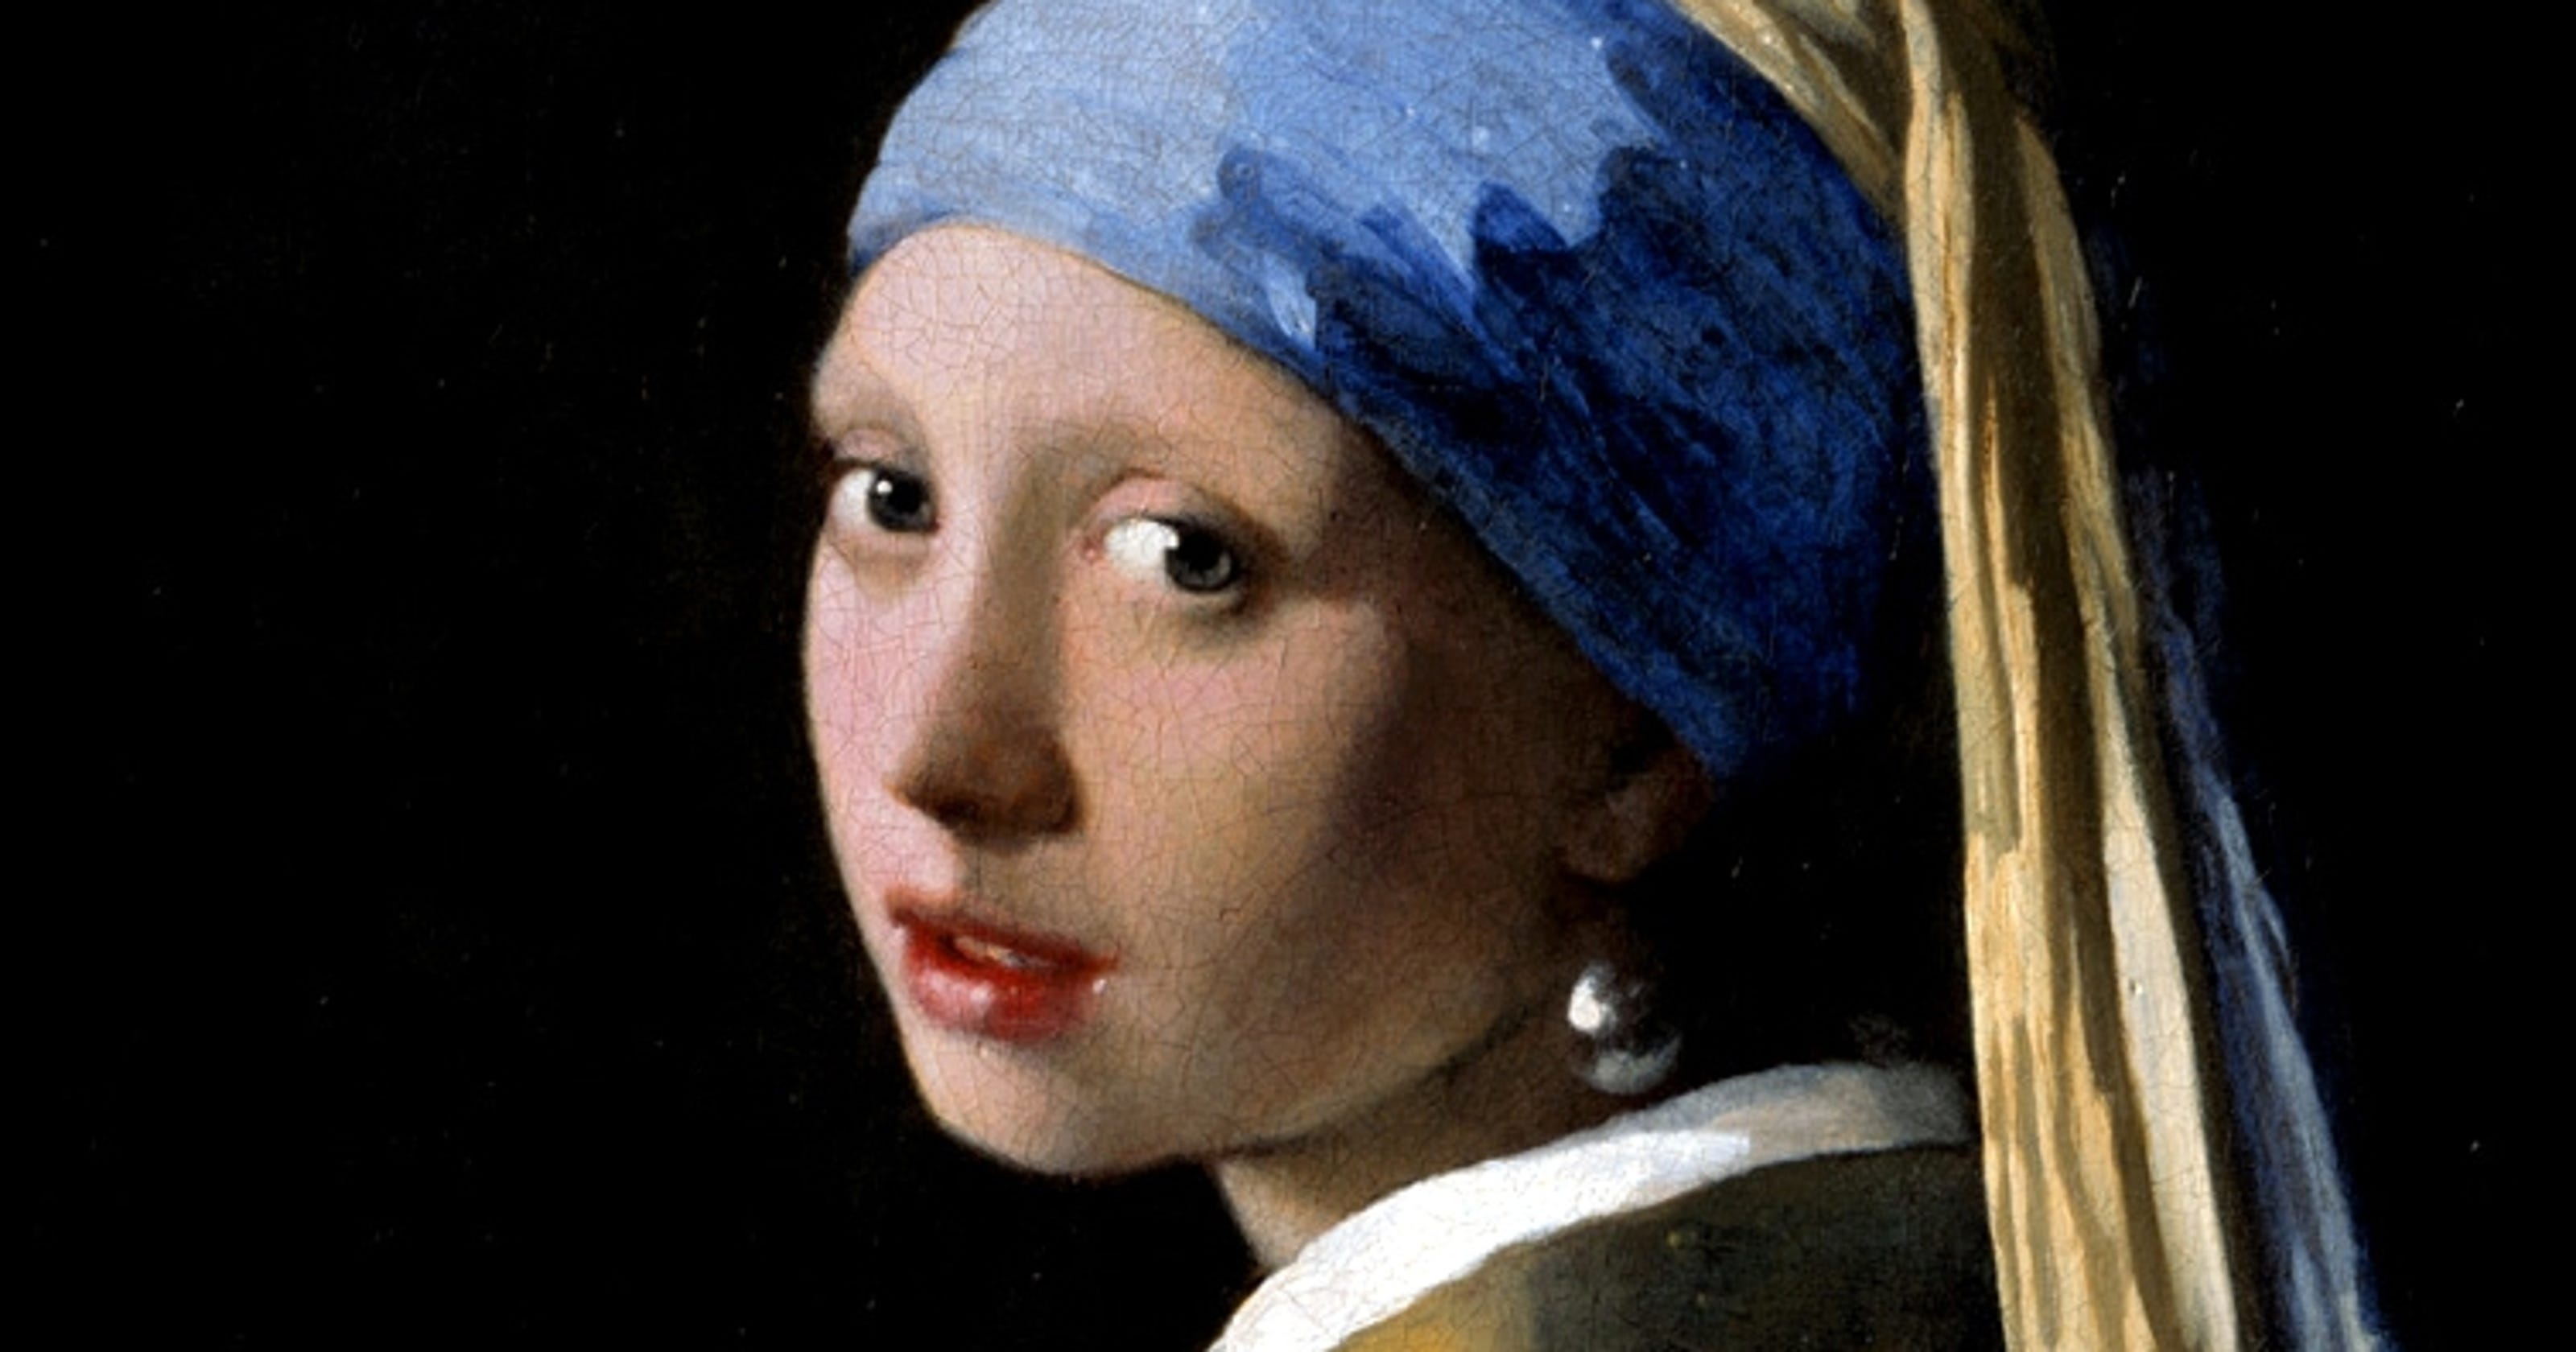 Girl With The Pearl Earring Original